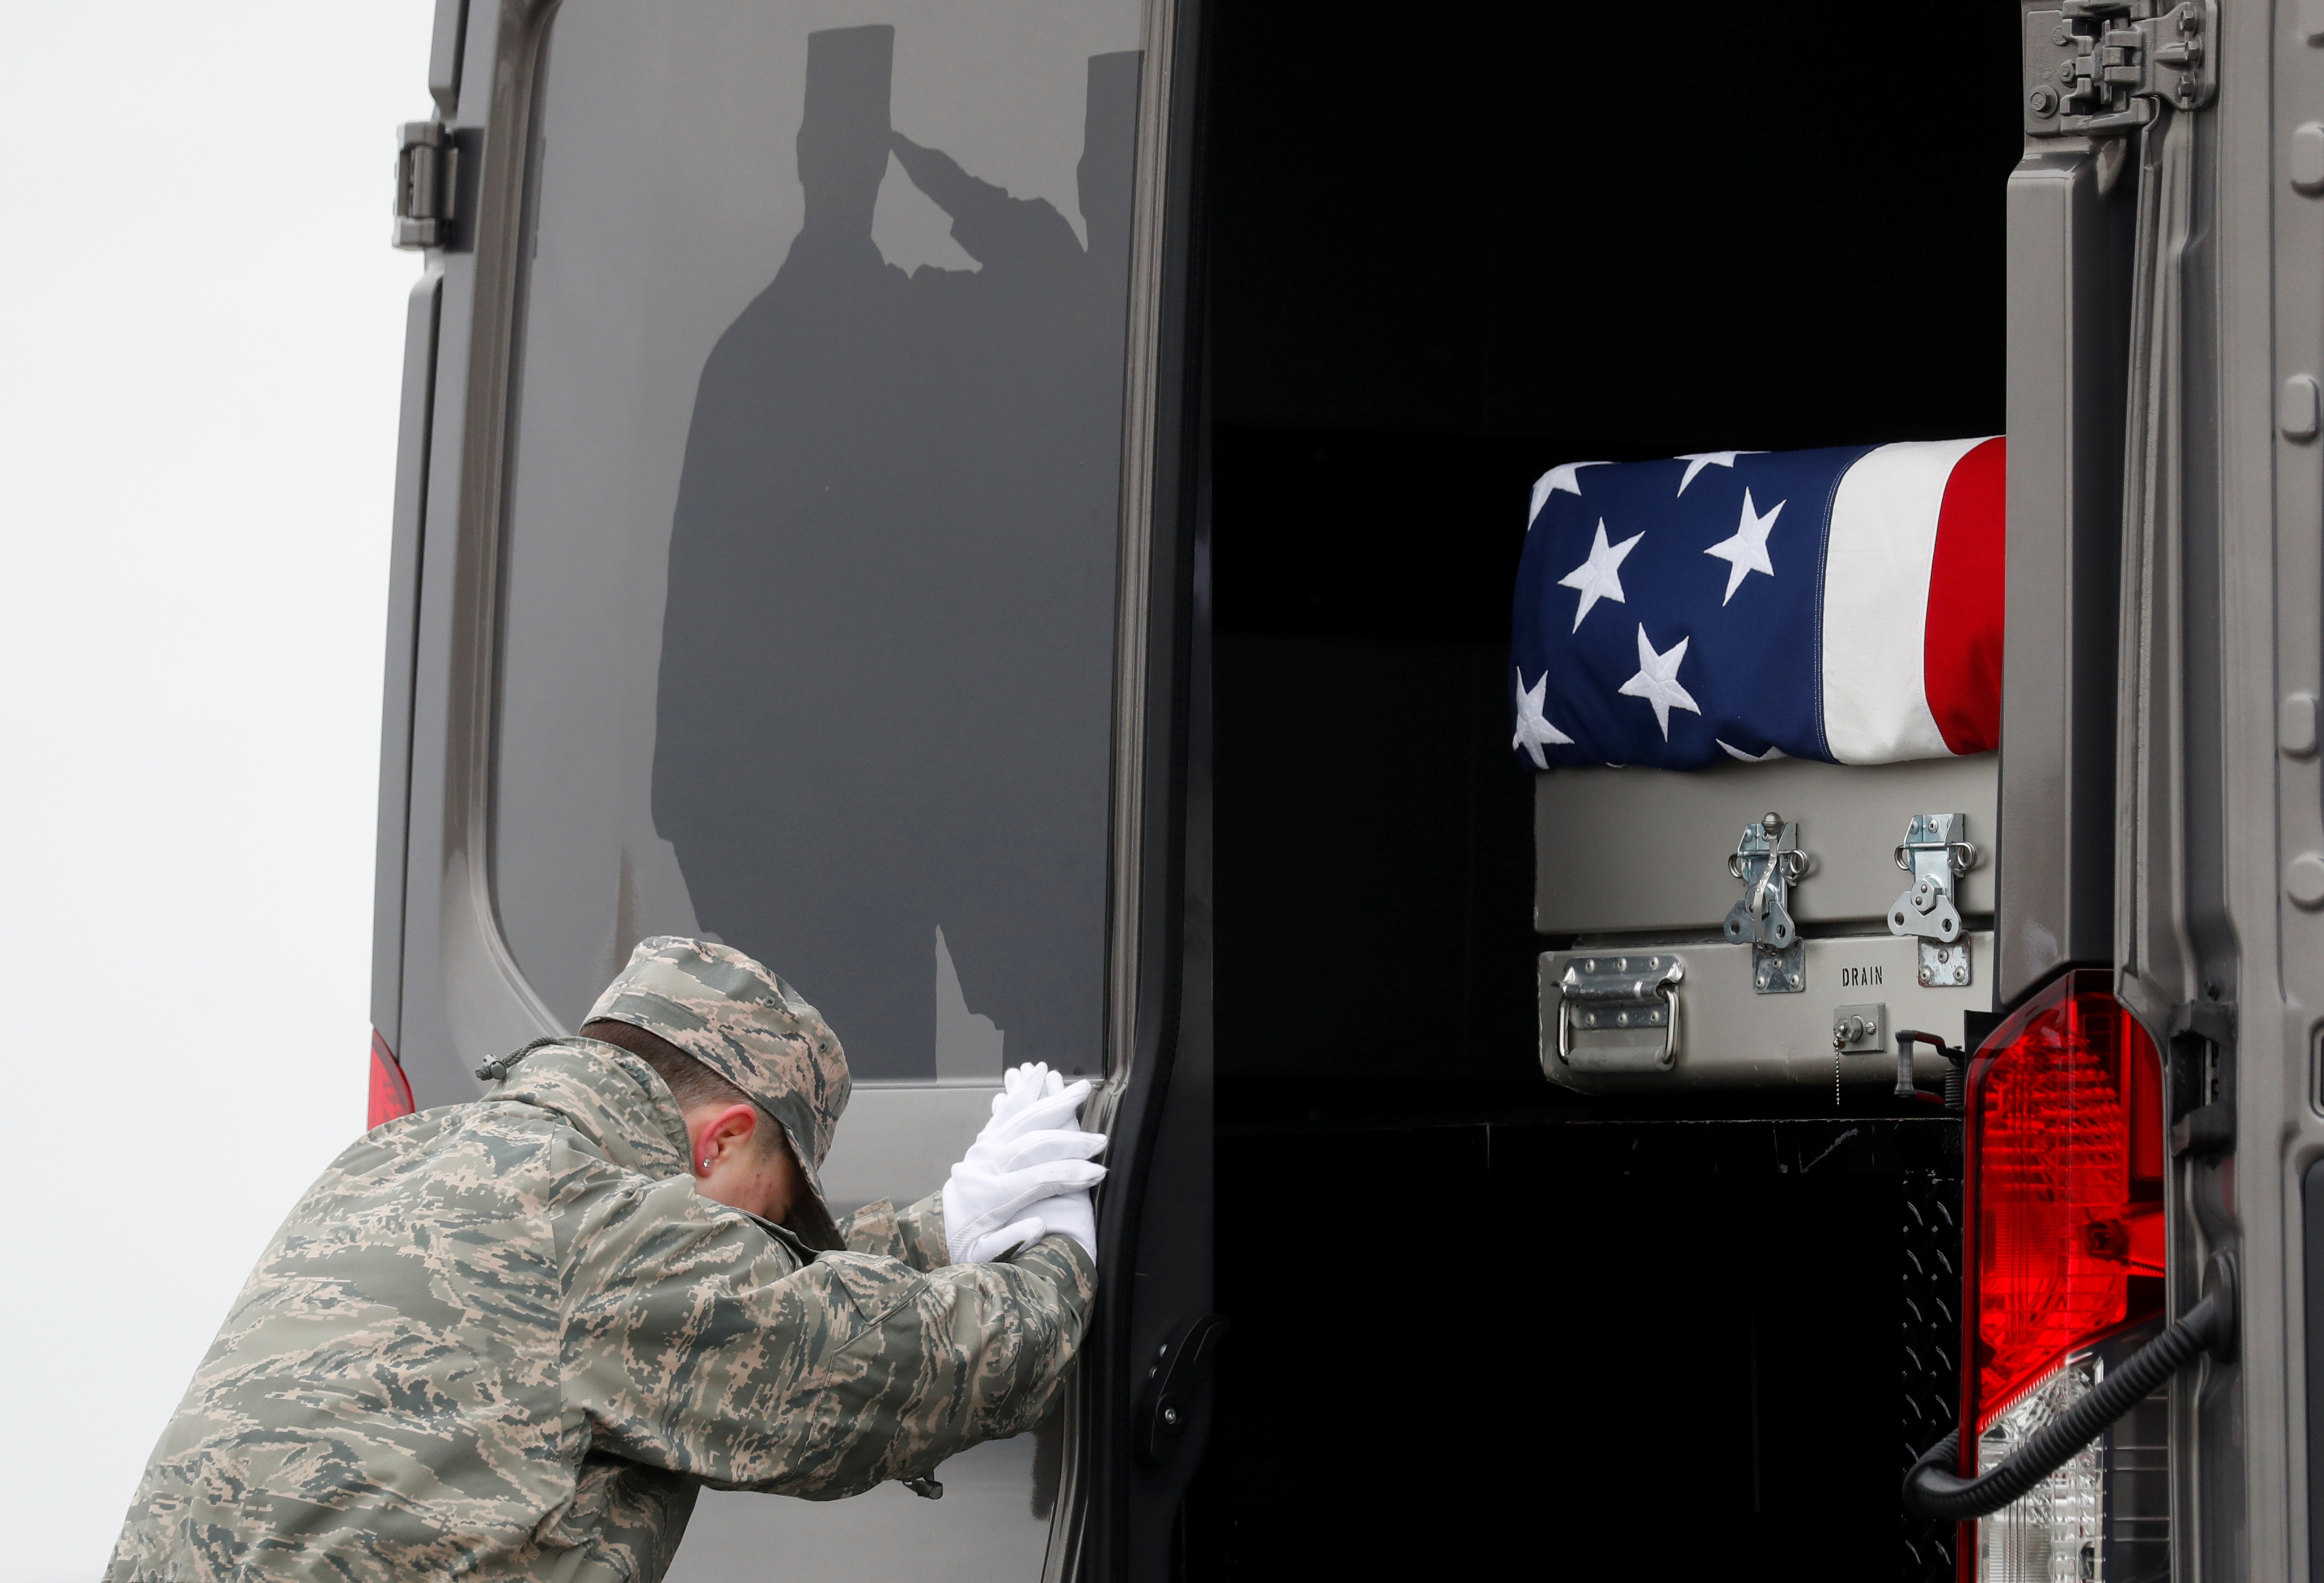 The casket carrying the remains of Scott Wirtz, a civilian employee of the U.S. Defense Intelligence Agency killed along with three members of the U.S. military during a recent attack in Syria, is placed in a military vehicle during a dignified transfer ceremony attended by U.S. President Donald Trump as they are returned to the United States at Dover Air Force Base, in Dover, Delaware, U.S., January 19, 2019. REUTERS/Kevin Lamarque